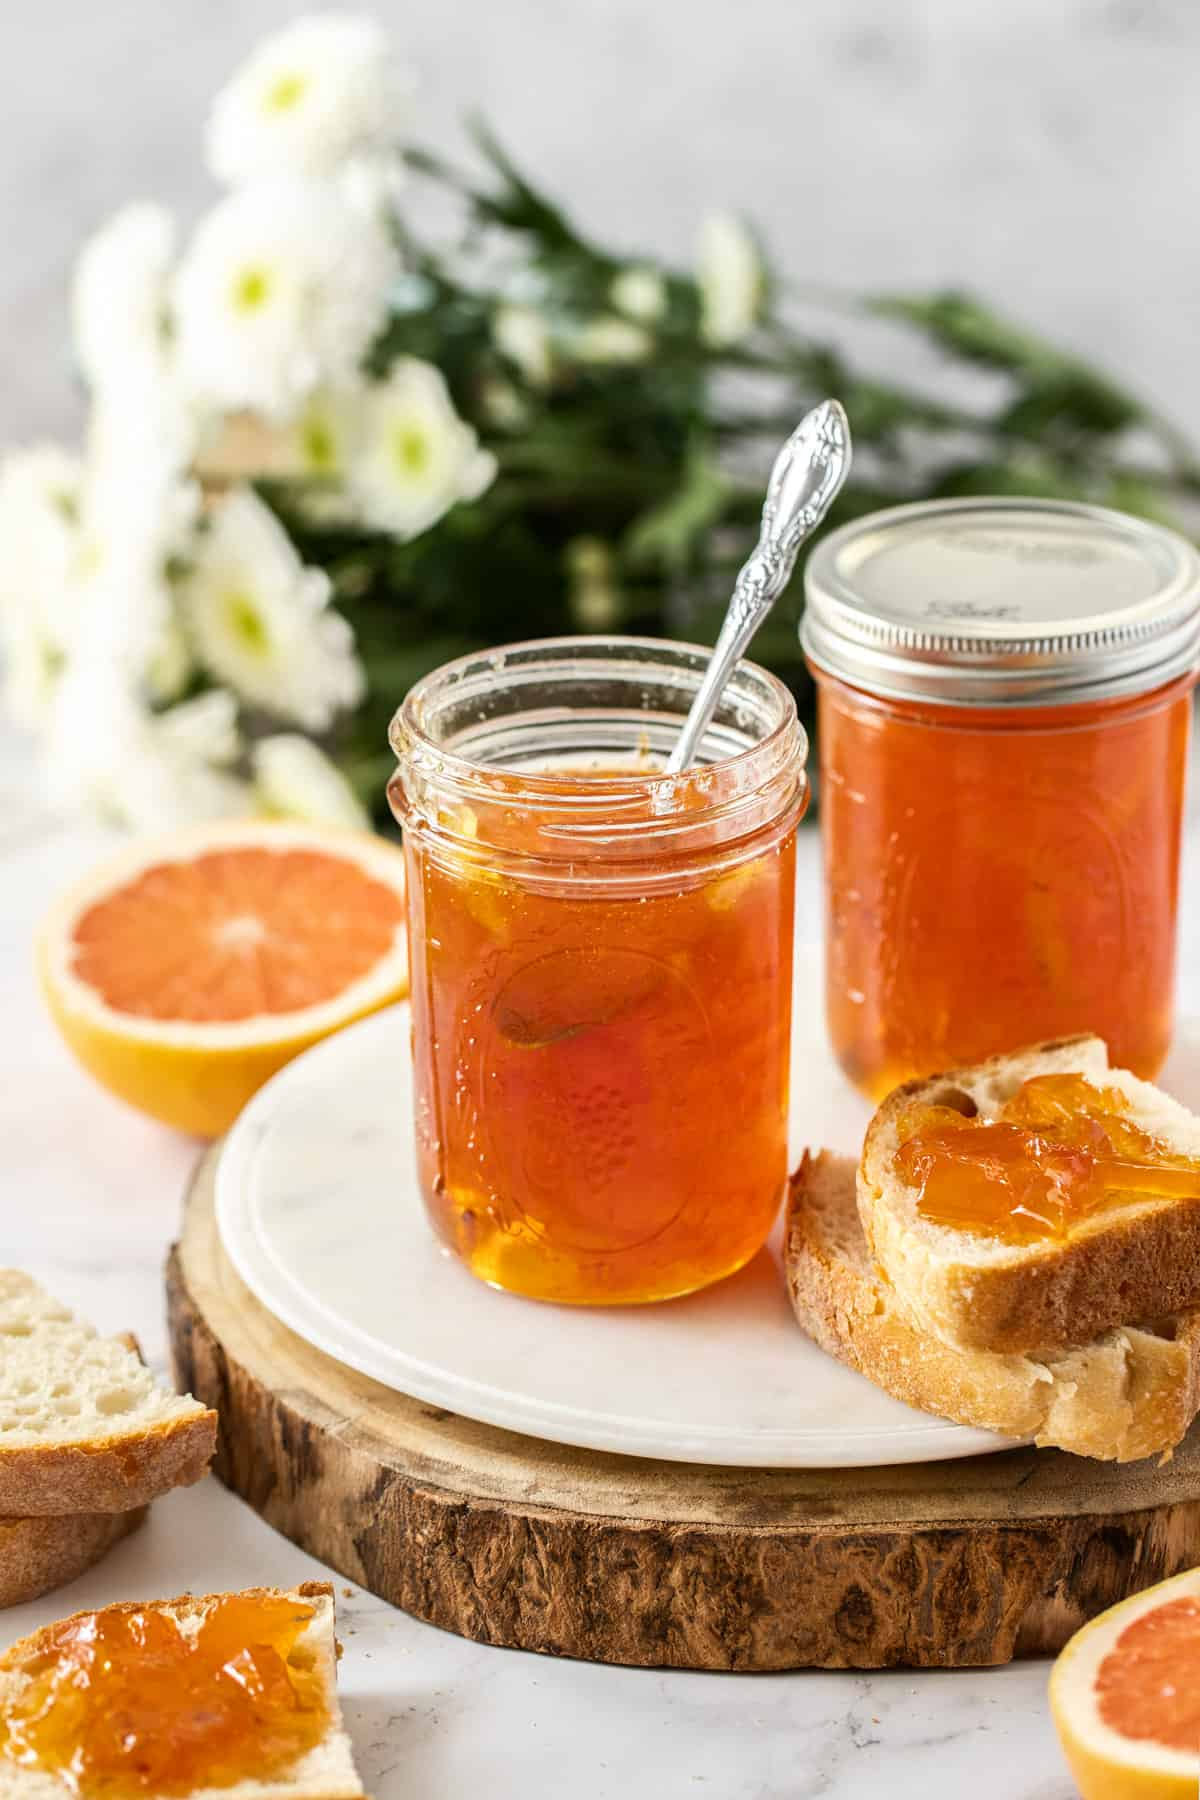 two jars of marmalade on a round board, one with a spoon in it, and some bread and grapefruit surrounding the board.